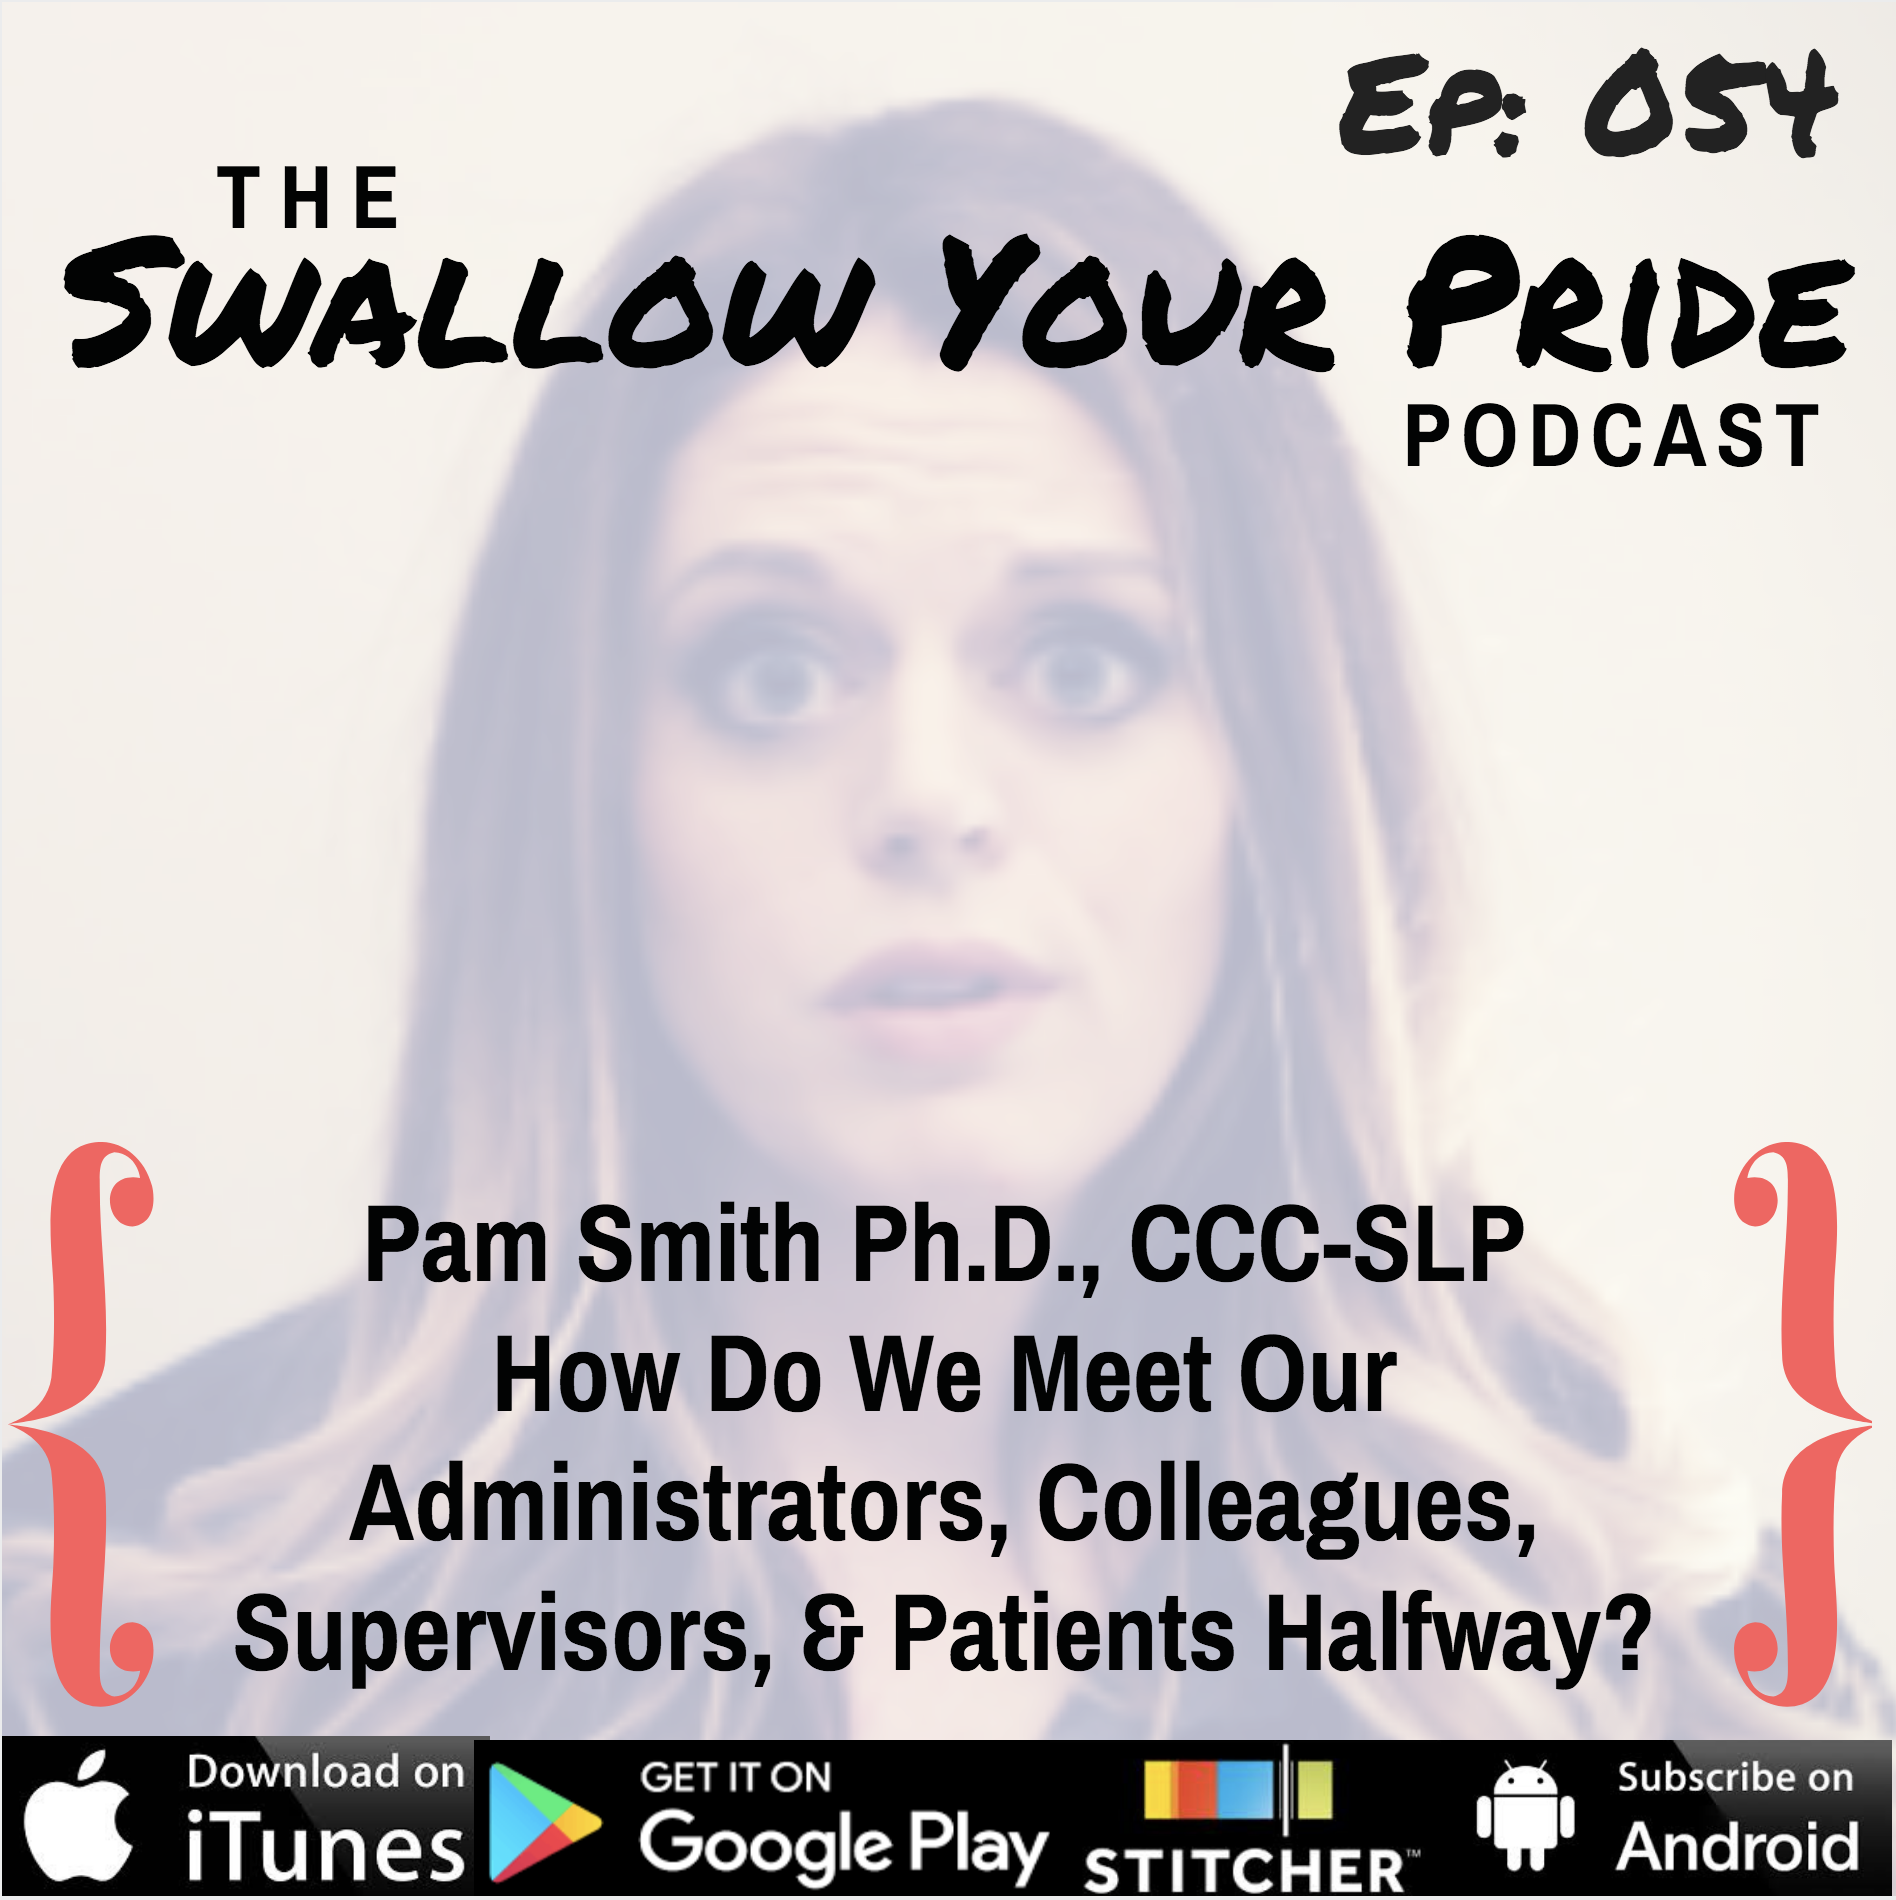 054 – Pam Smith Ph.D., CCC-SLP How Do We Meet Our Administrators, Colleagues, Supervisors, and Patients Half Way?